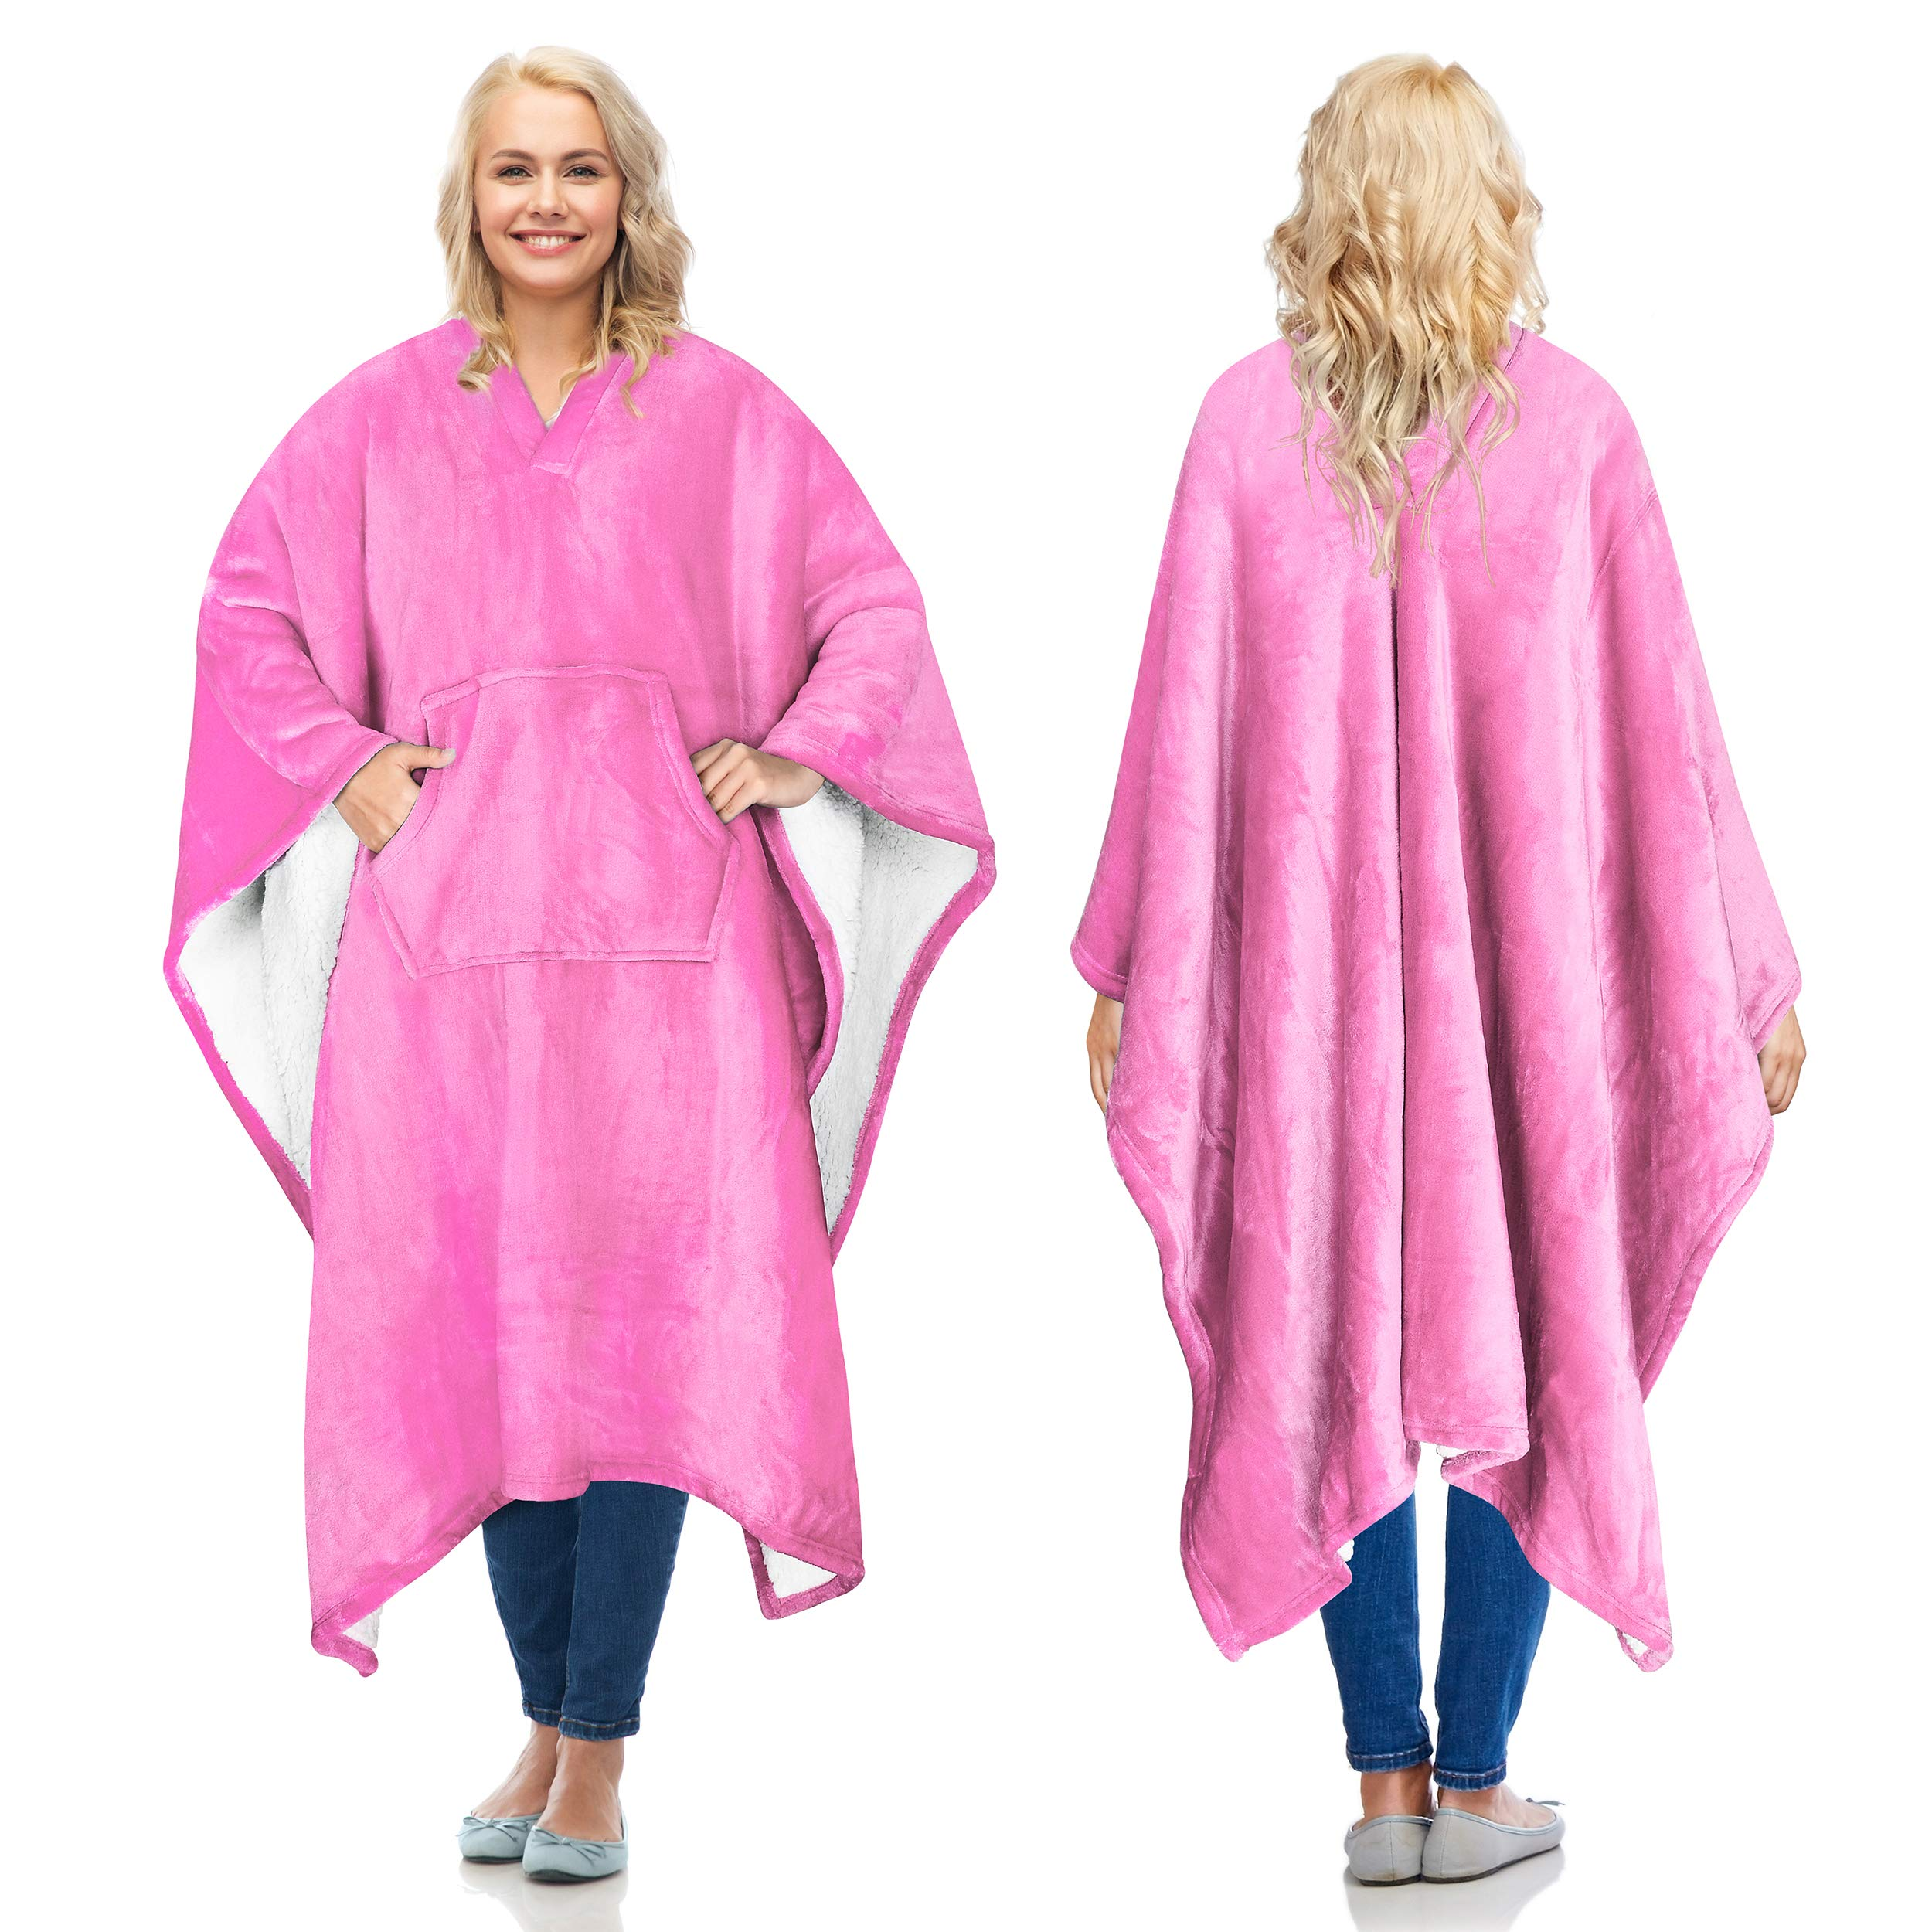 Catalonia Sherpa Wearable Blanket Poncho for Adult Women Men,Wrap Blanket Cape with Pocket,Warm,Soft,Cozy,Snuggly,Comfort Gift,No Sleeves,Pink